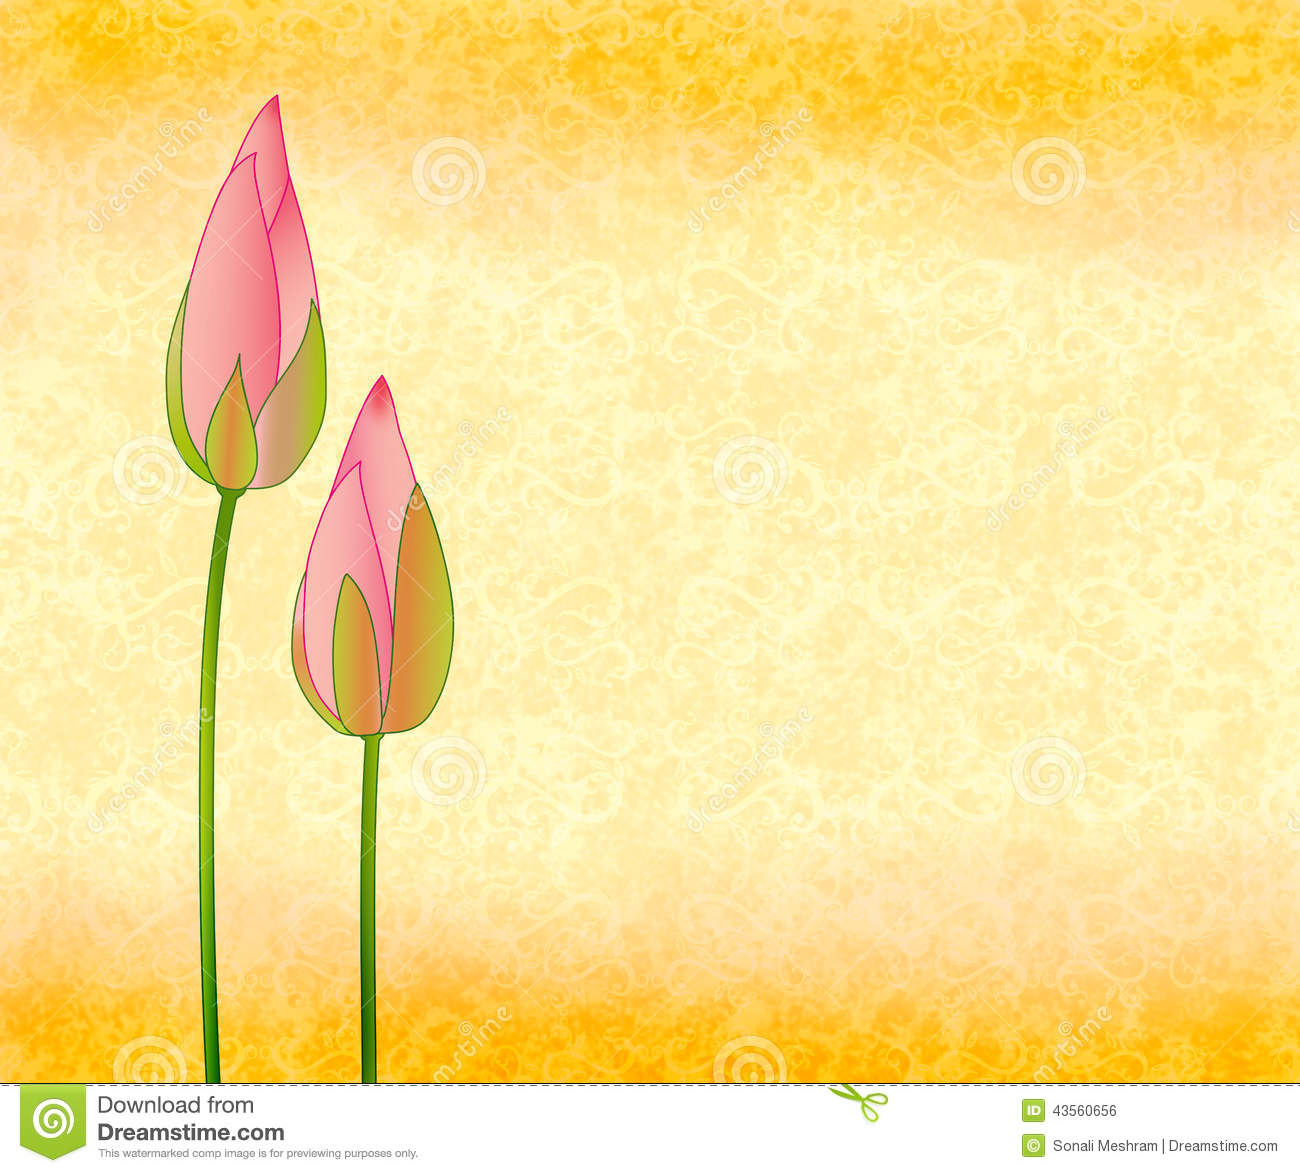 Download Lotus Buds On Seamless Background Stock Illustration - Illustration of health, beauty: 43560656